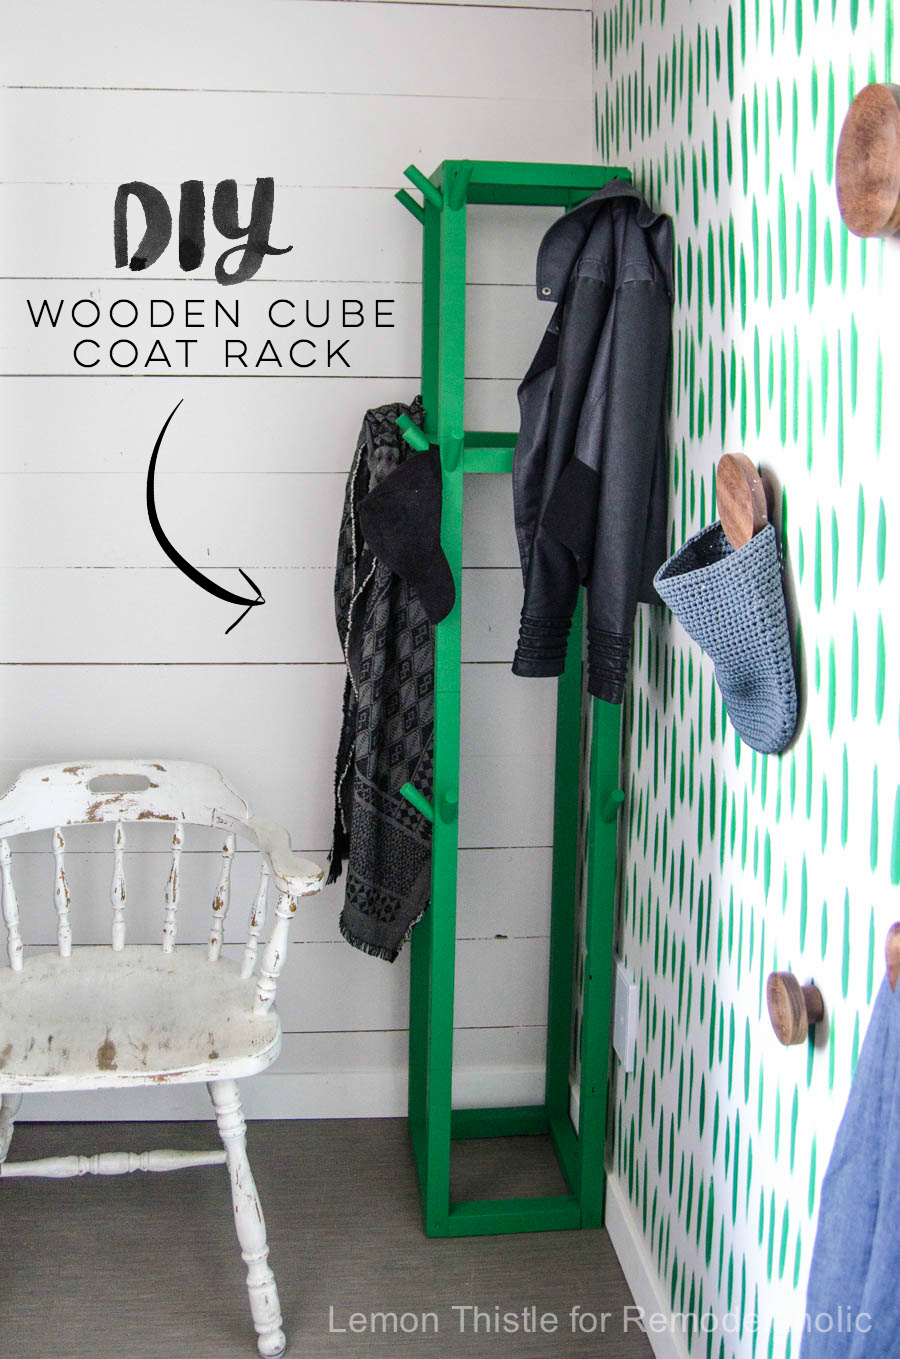 Beautiful I Love This DIY Wooden Coat Rack  The Cube Shape And Green Paint Is So